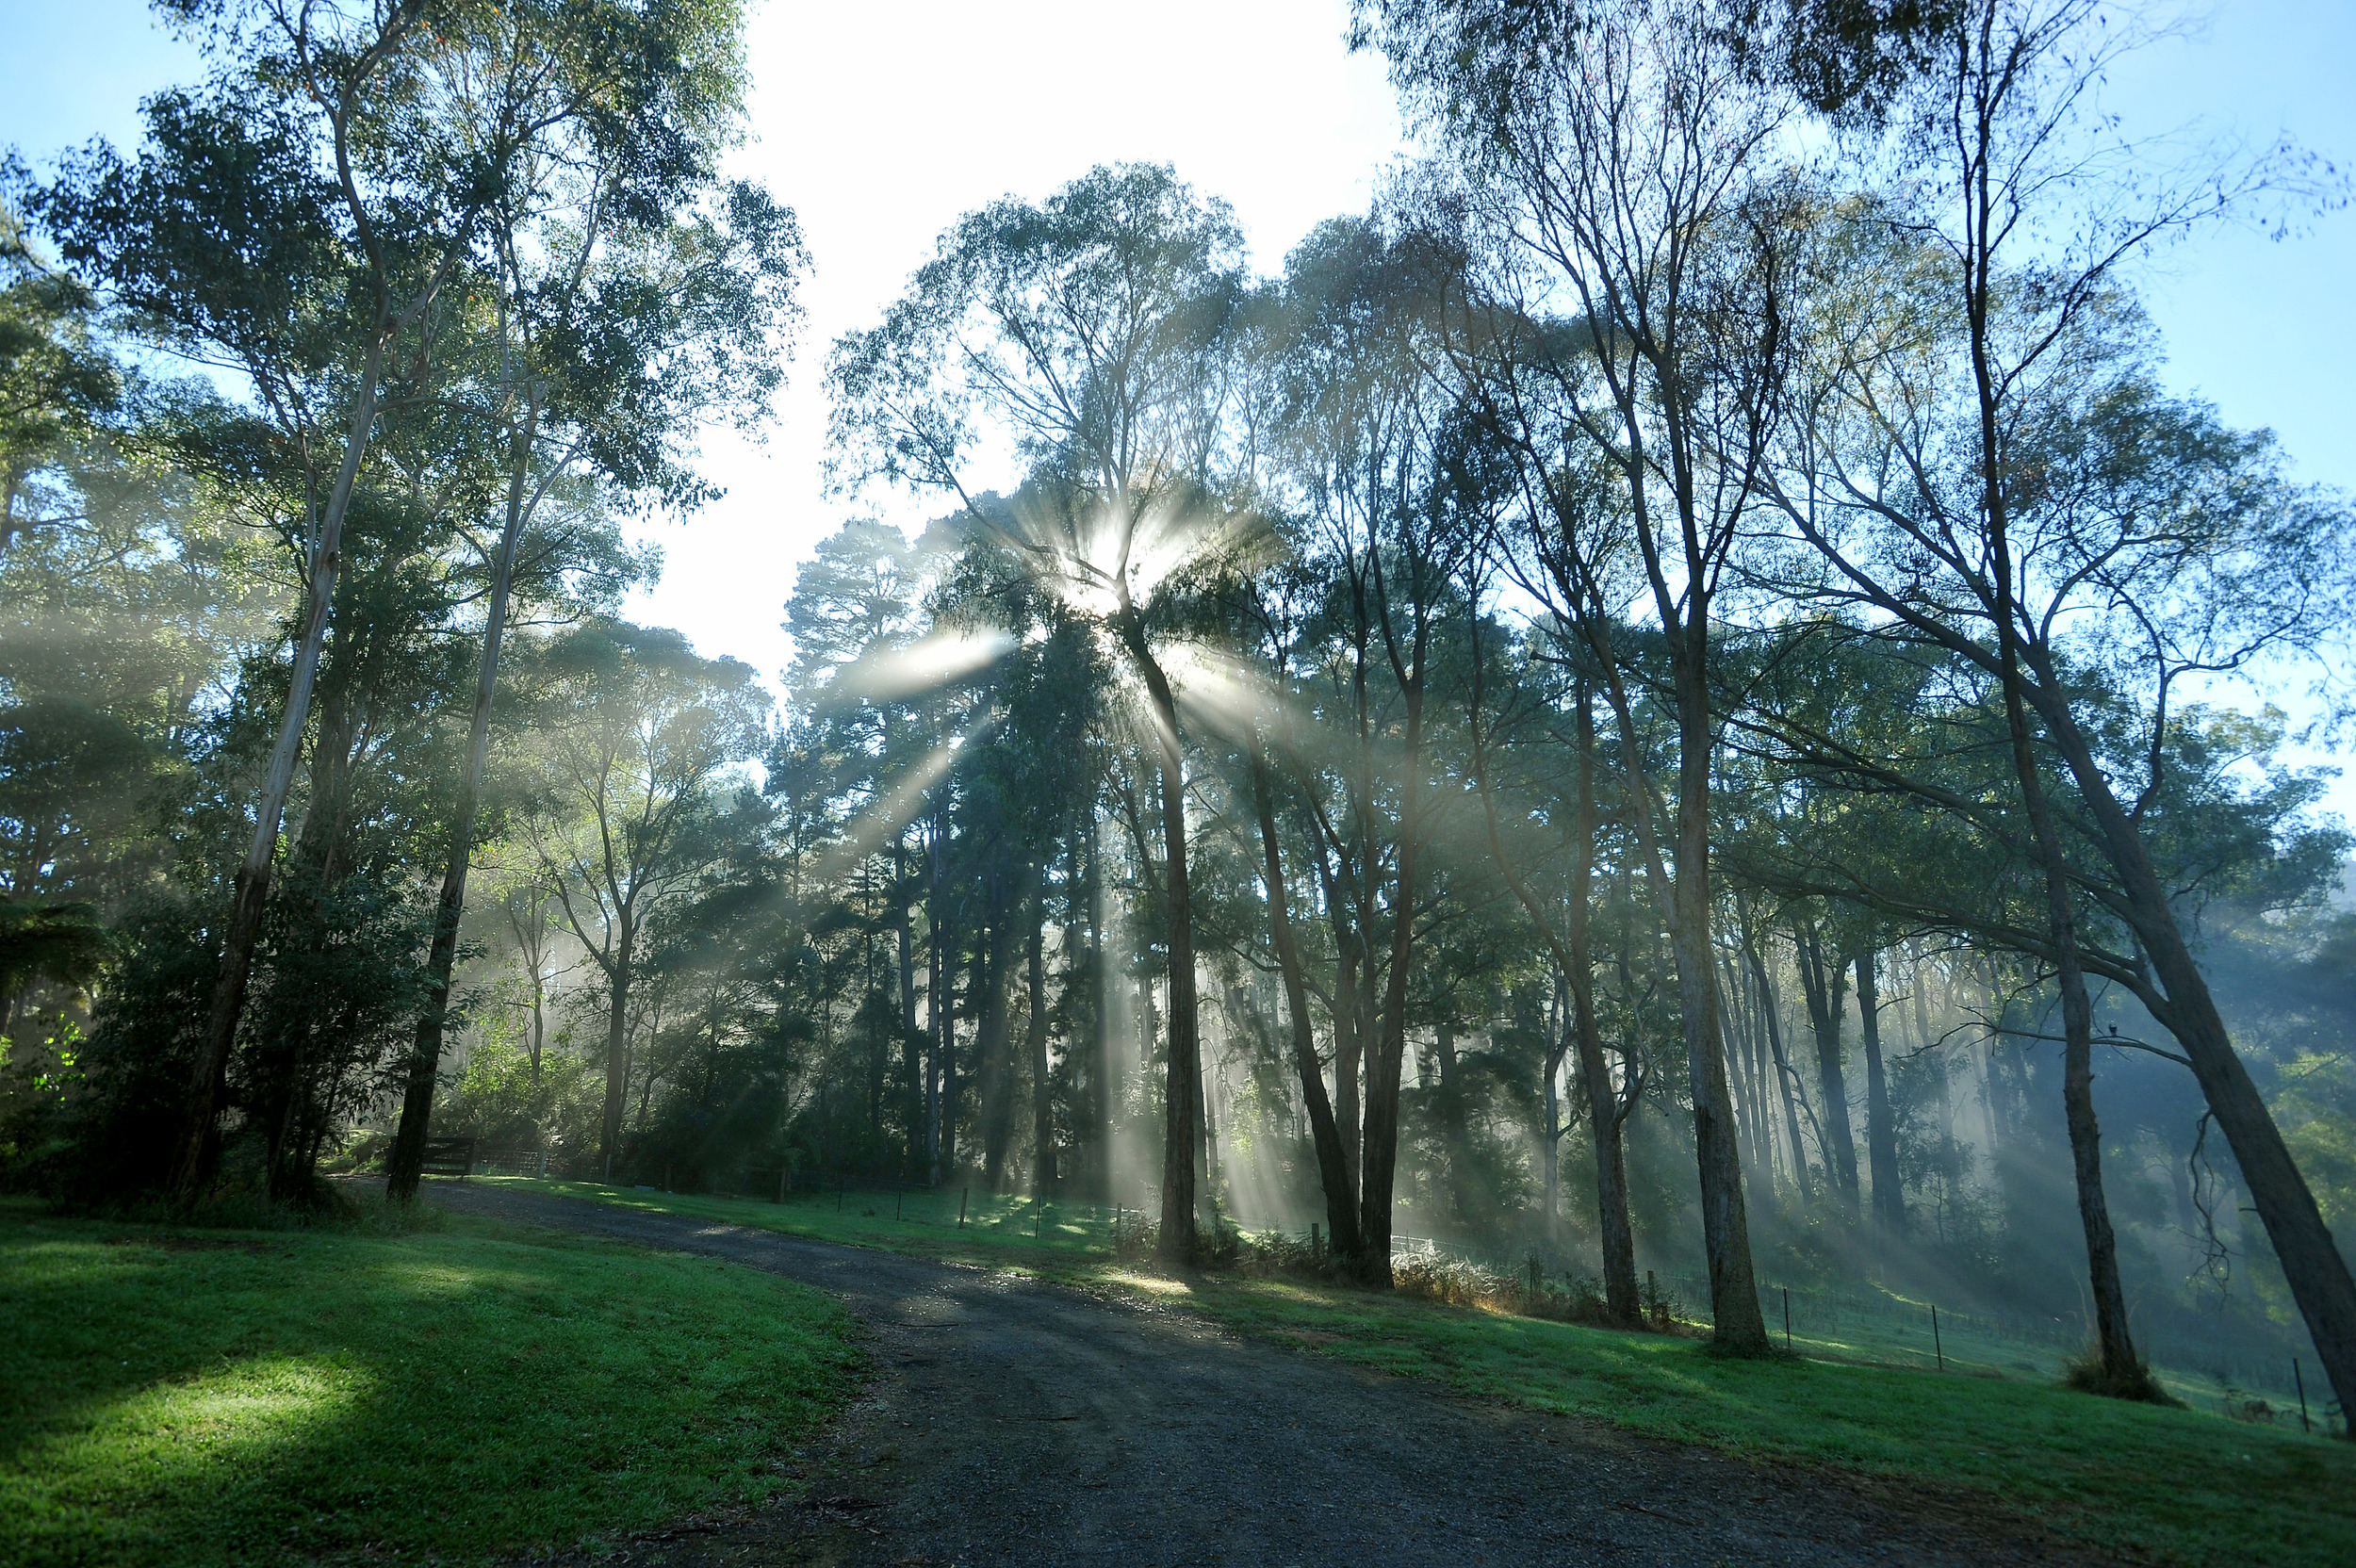 A bright new morning in Healesville Victoria.